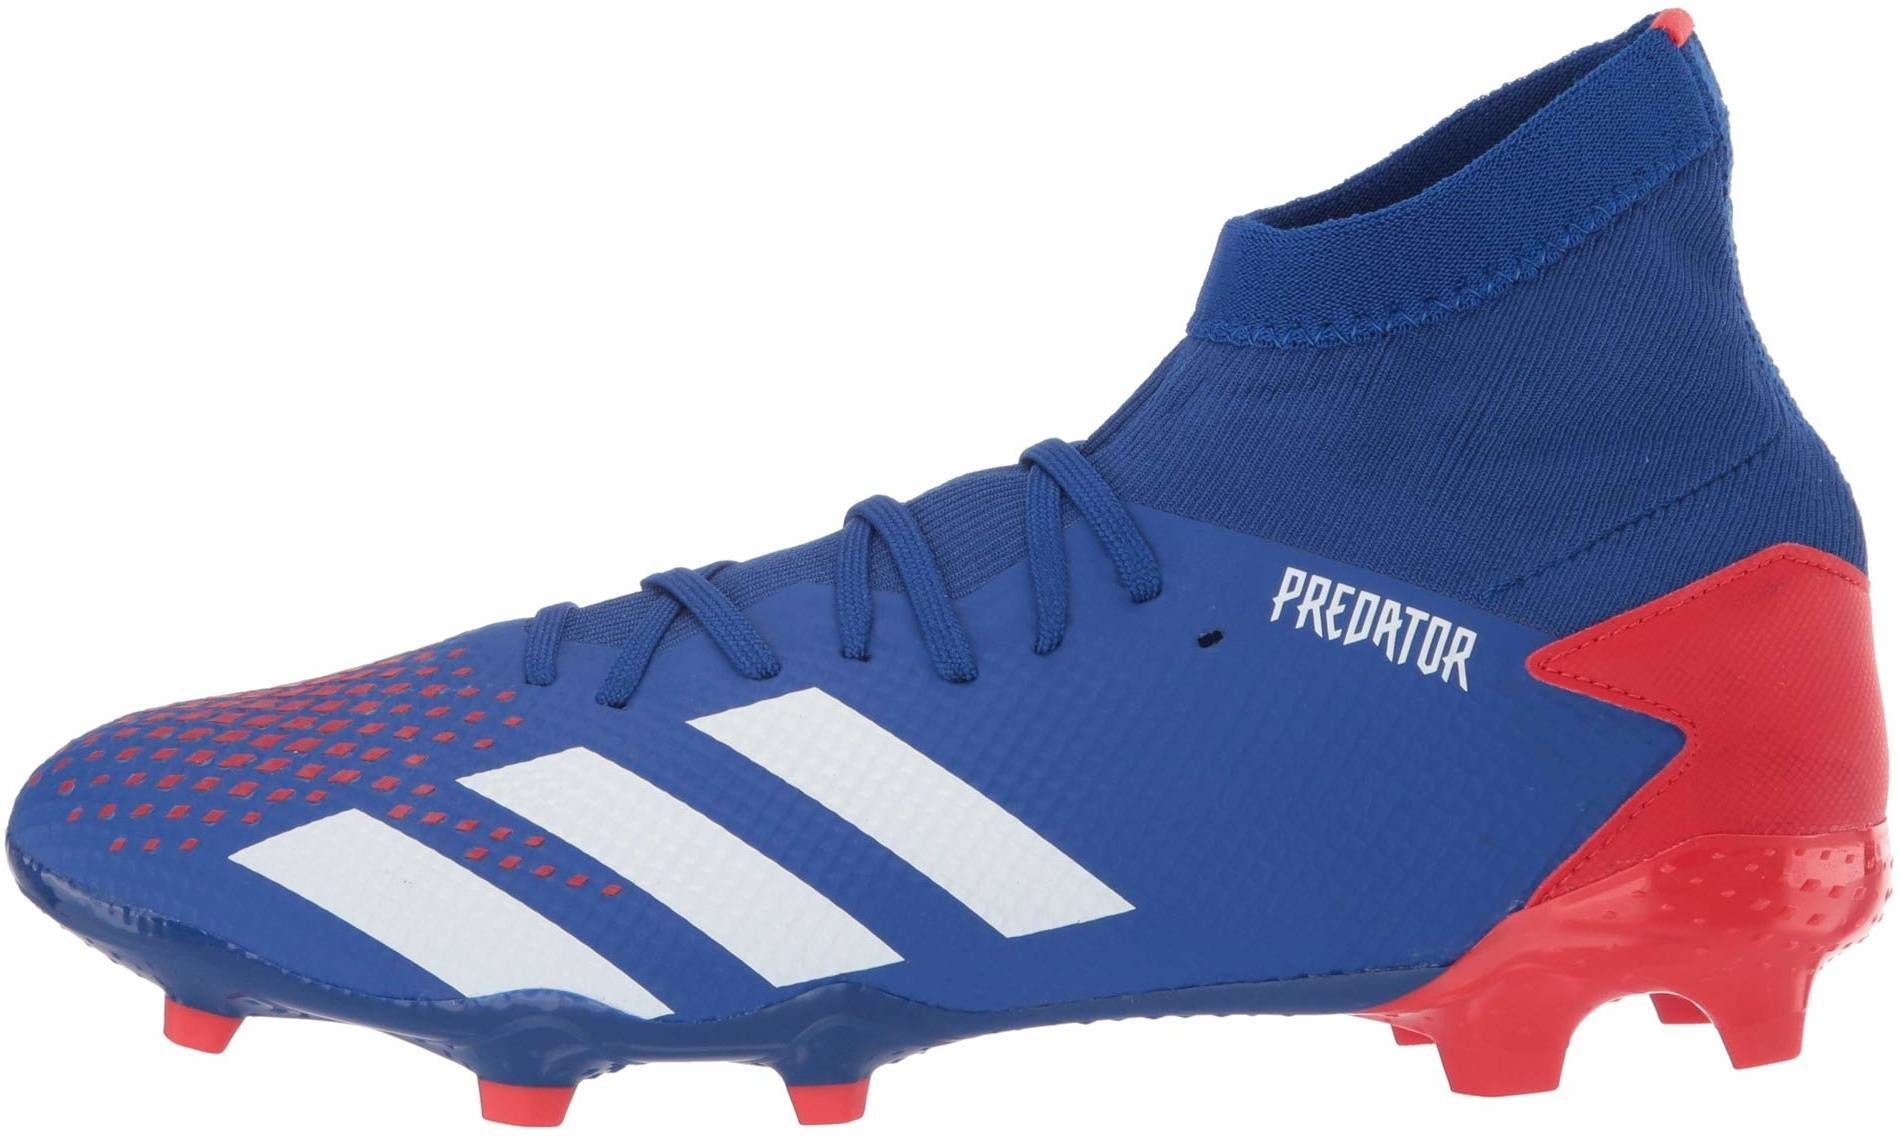 Save 50% on Blue Soccer Cleats (106